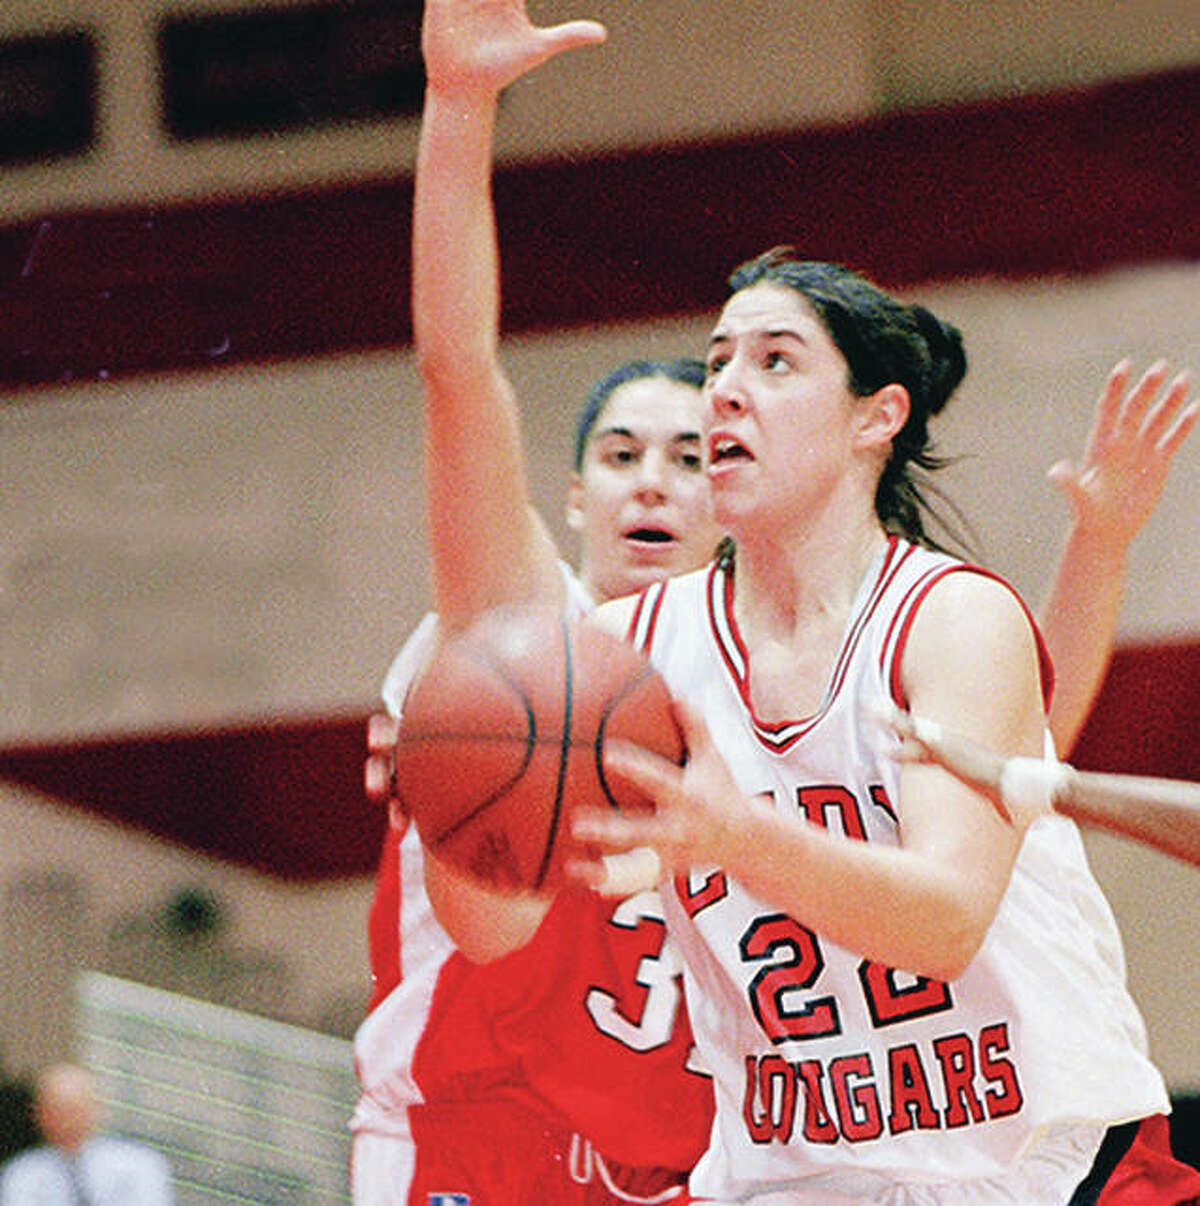 Former Cougars standout Alicia Harkins has been named to the Indiana Basketball Hall of Fame Silver Anniversary Team. She played at SIUE from 1995 to 1998.